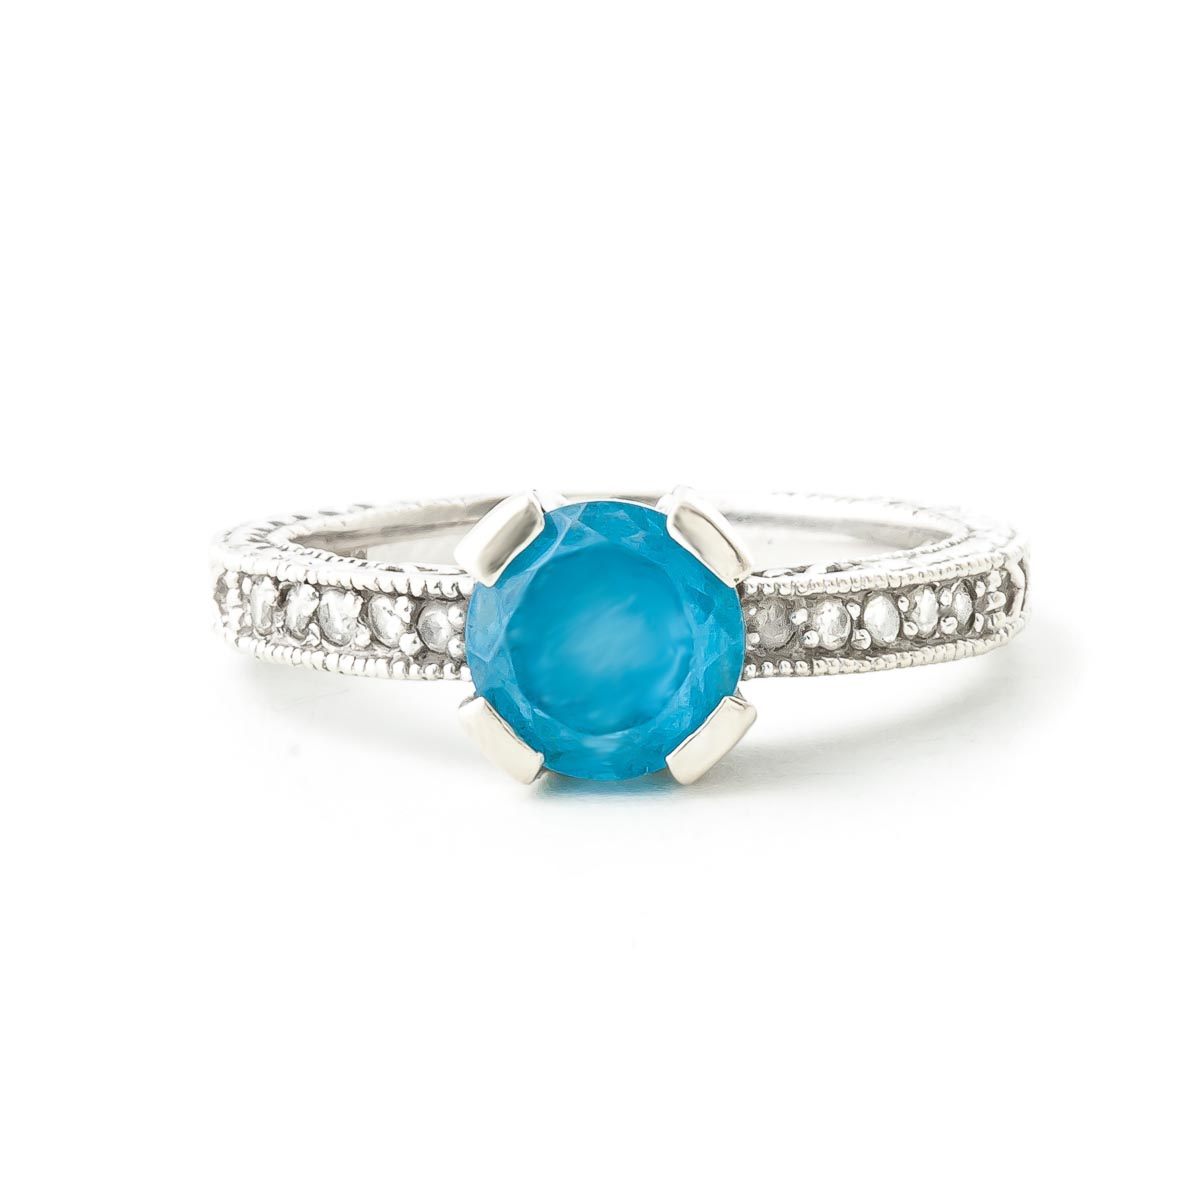 Blue Topaz & Diamond Renaissance Ring in 9ct White Gold